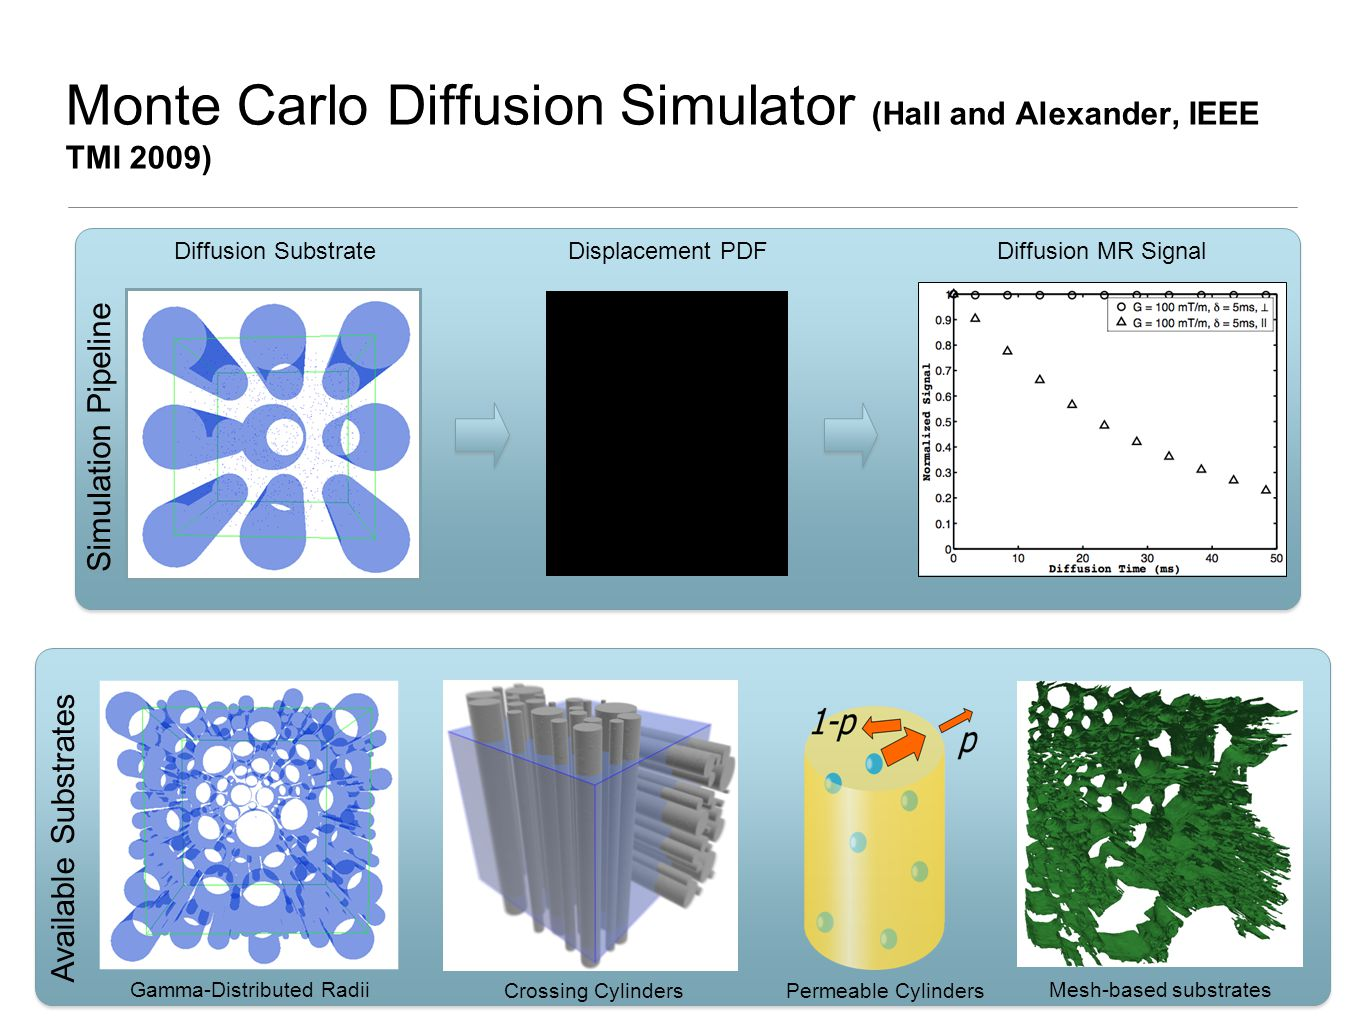 Monte Carlo Diffusion Simulator (Hall and Alexander, IEEE TMI 2009) Available Substrates Gamma-Distributed Radii Crossing Cylinders Mesh-based substrates Permeable Cylinders Diffusion SubstrateDisplacement PDFDiffusion MR Signal Simulation Pipeline